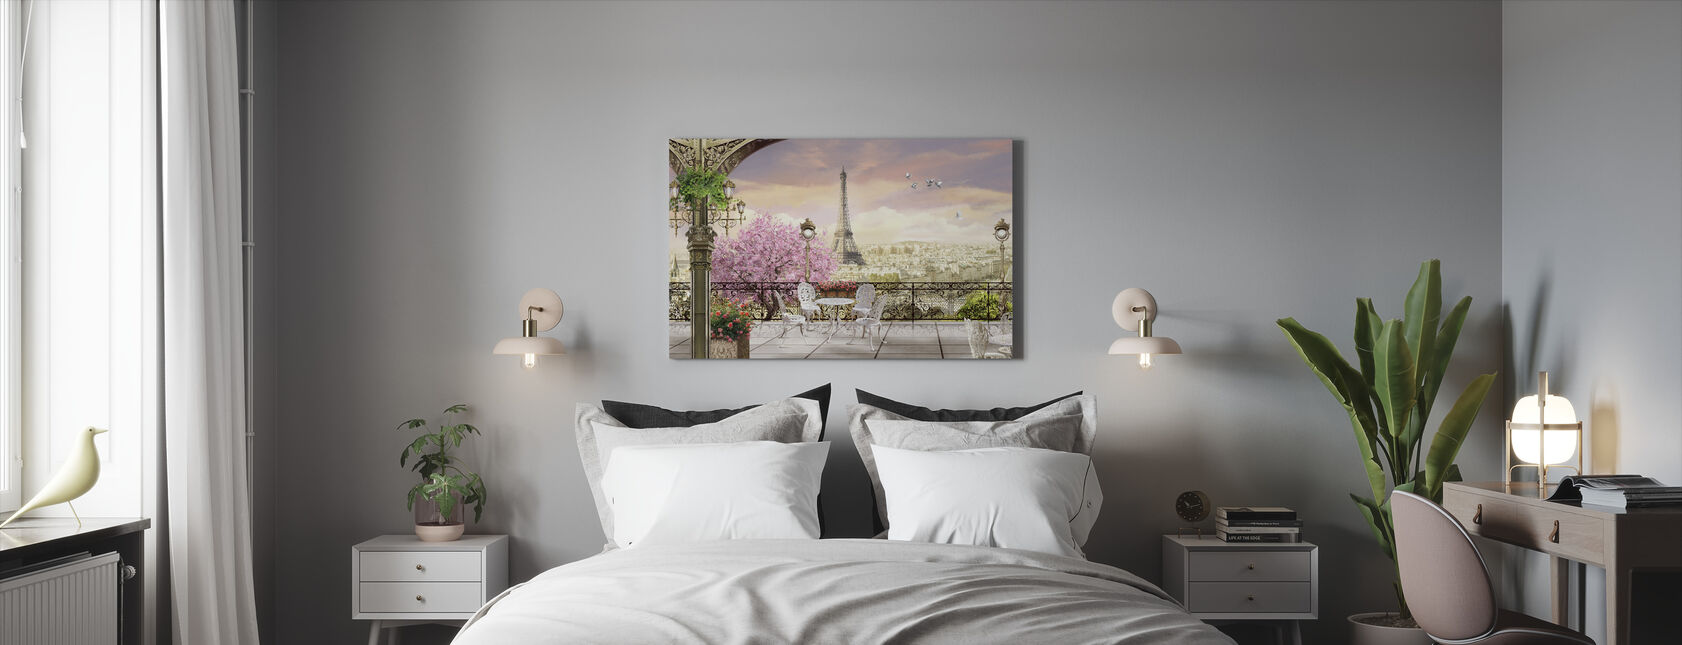 Paris Terrace - Canvas print - Bedroom